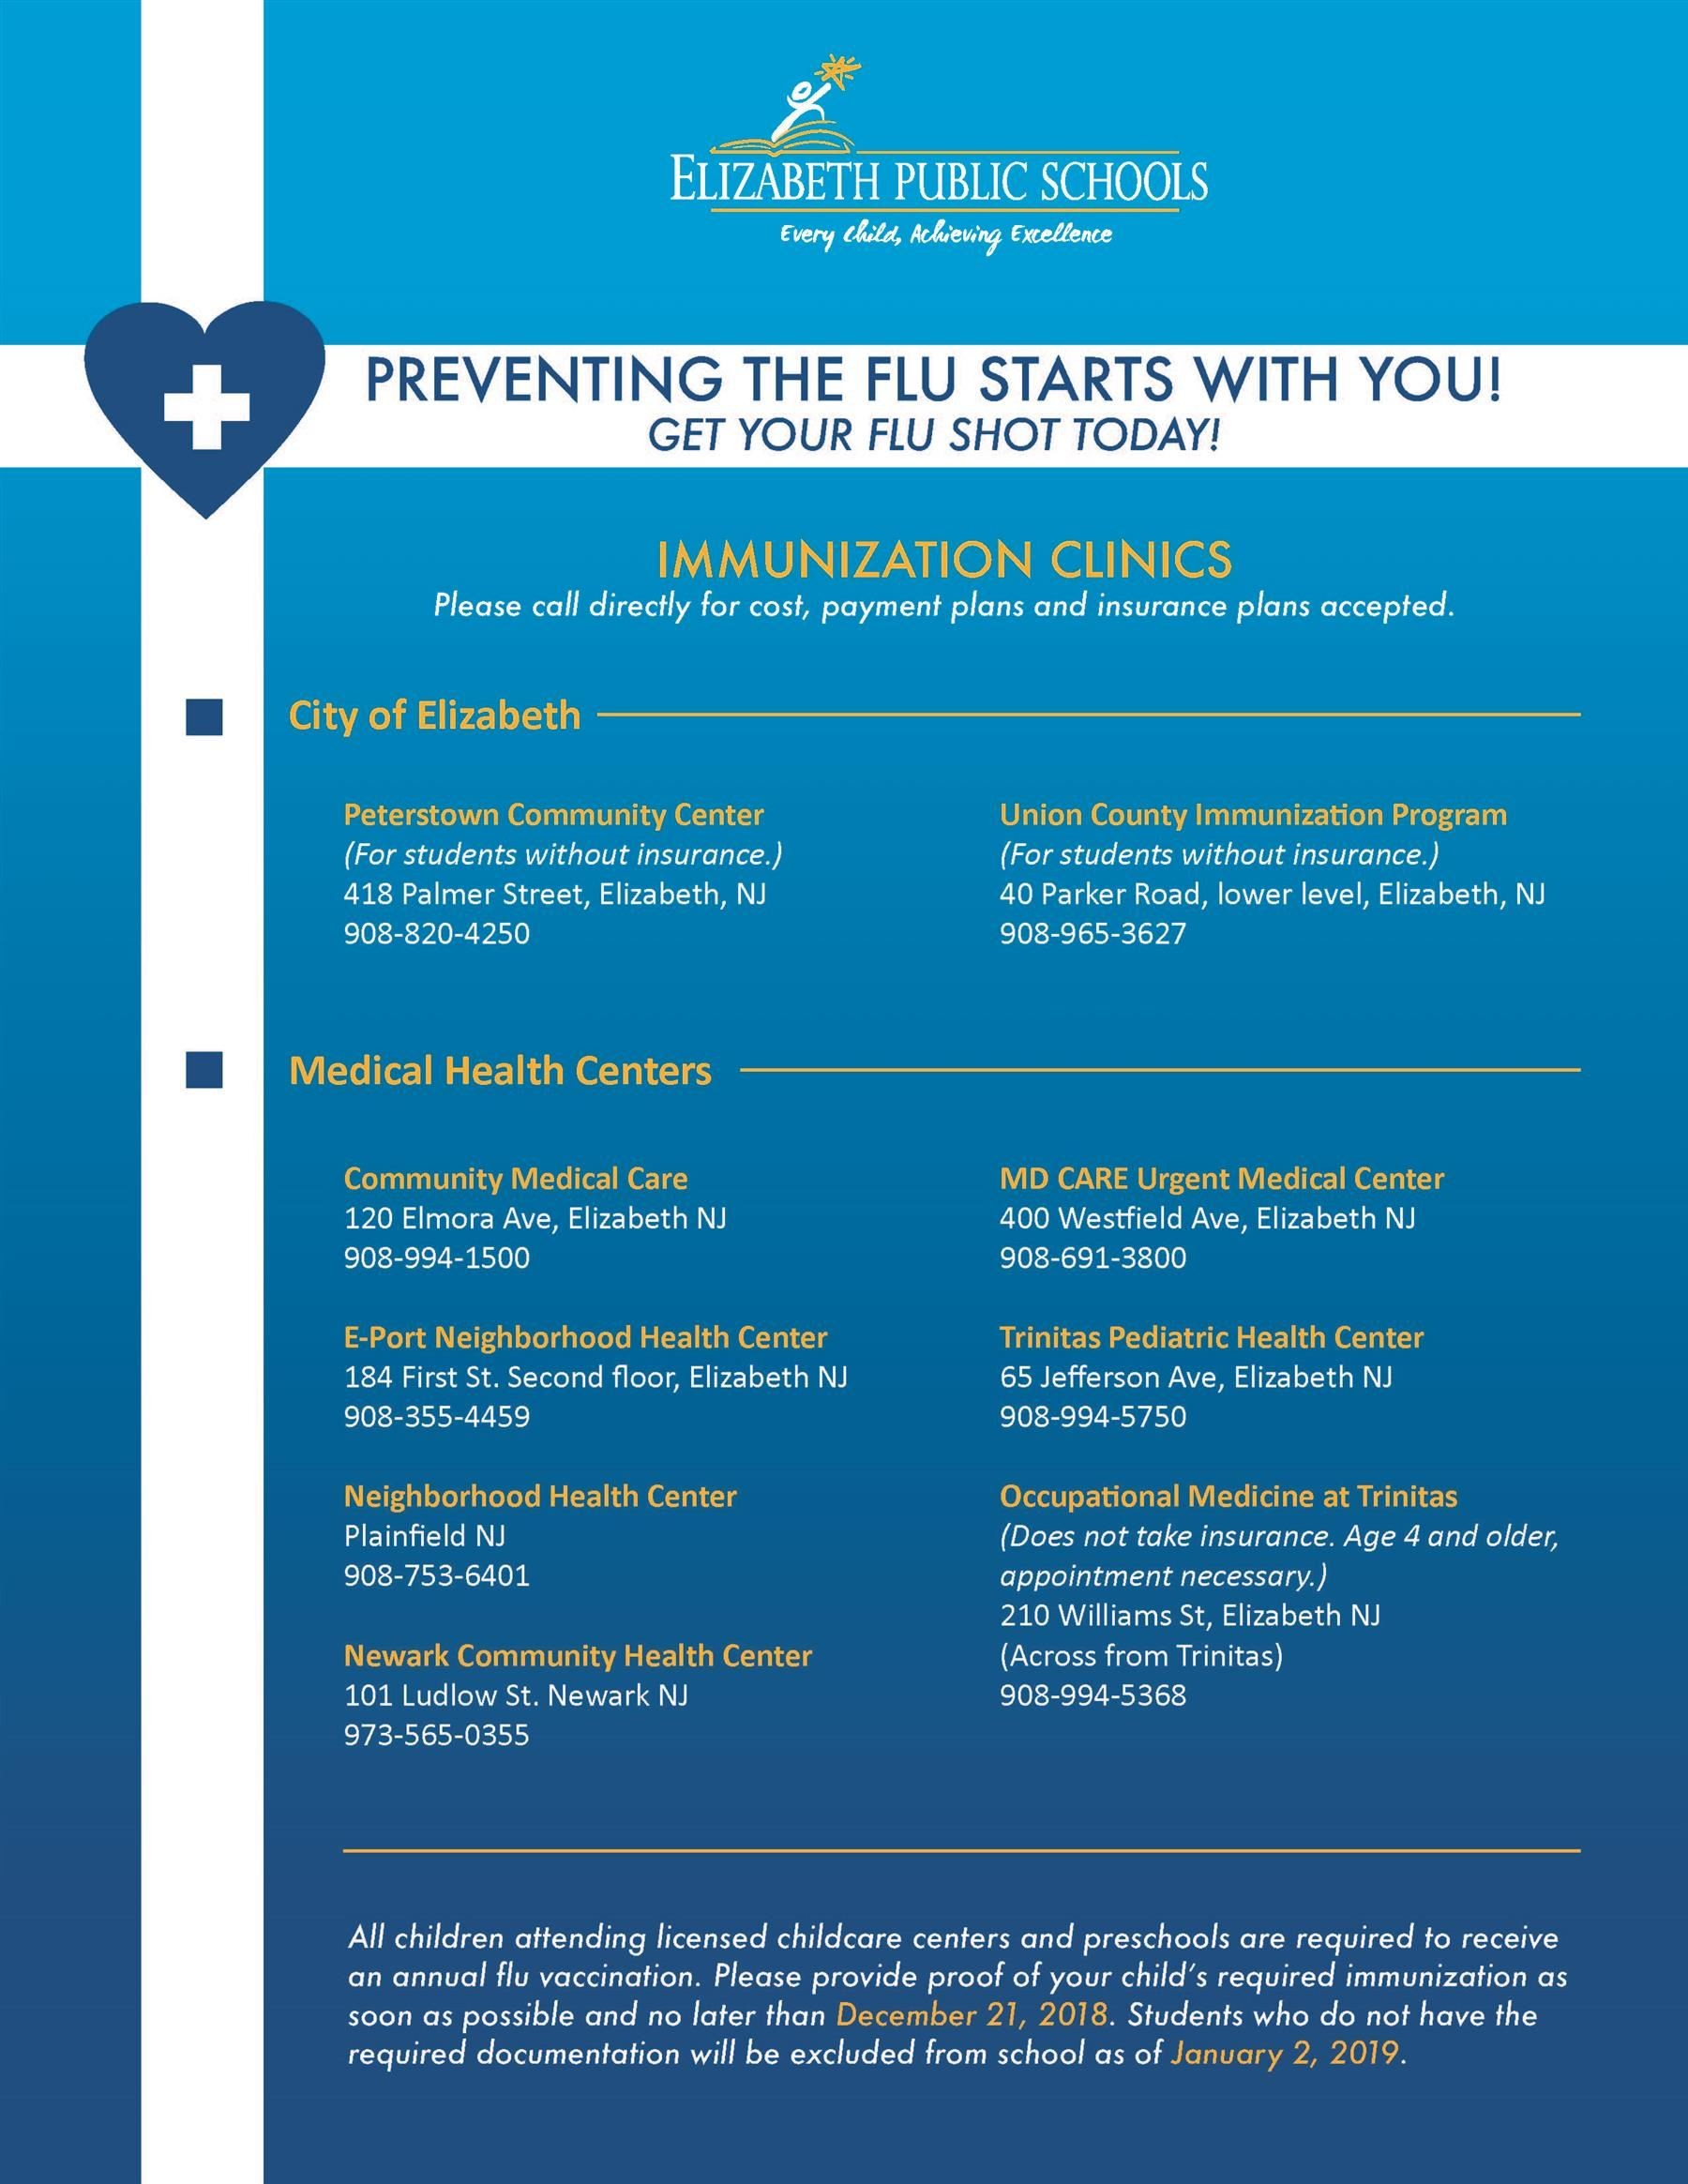 PREVENTING THE FLU STARTS WITH YOU GET YOUR FLU SHOT TODAY